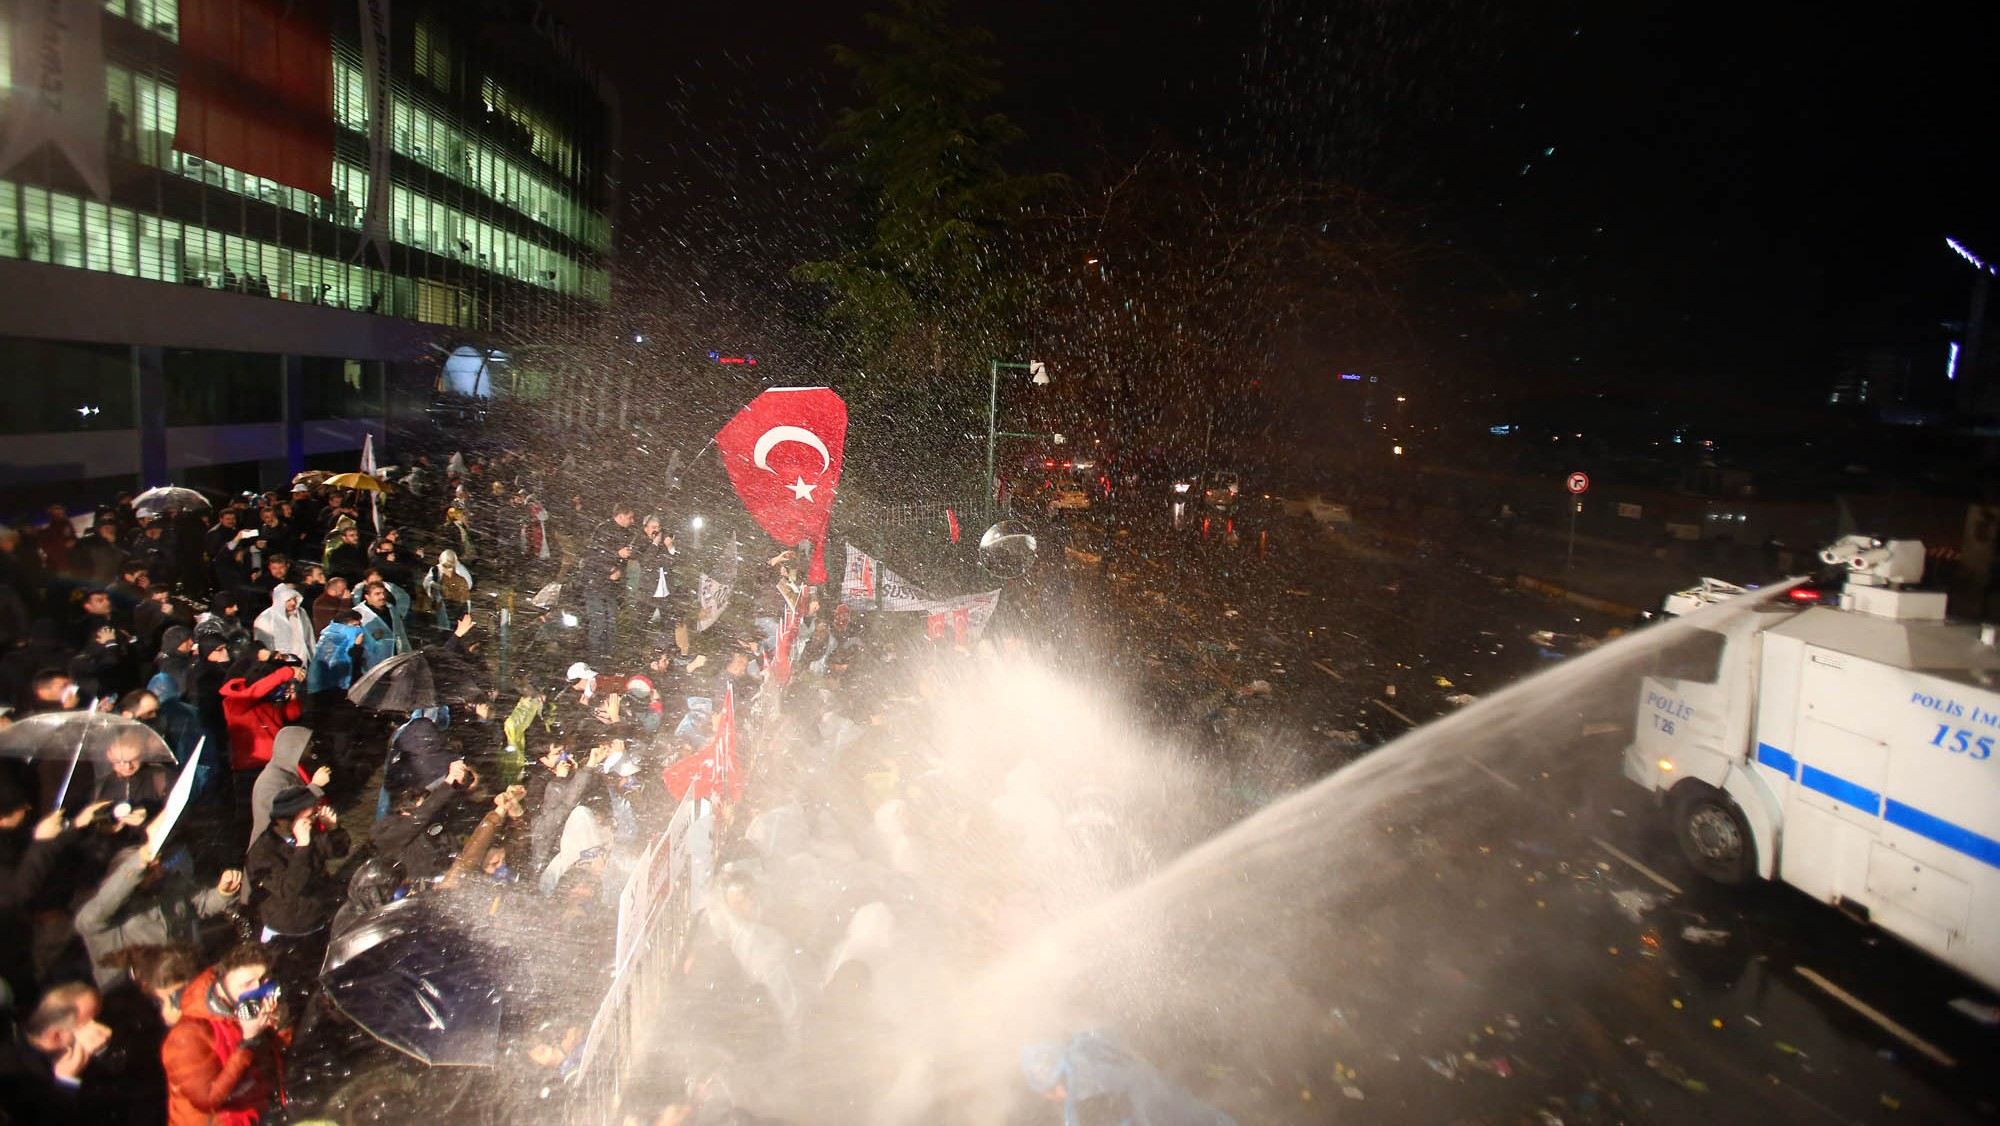 Turkey Fires Top Editor of Country's Largest Newspaper as Media Crackdown Continues